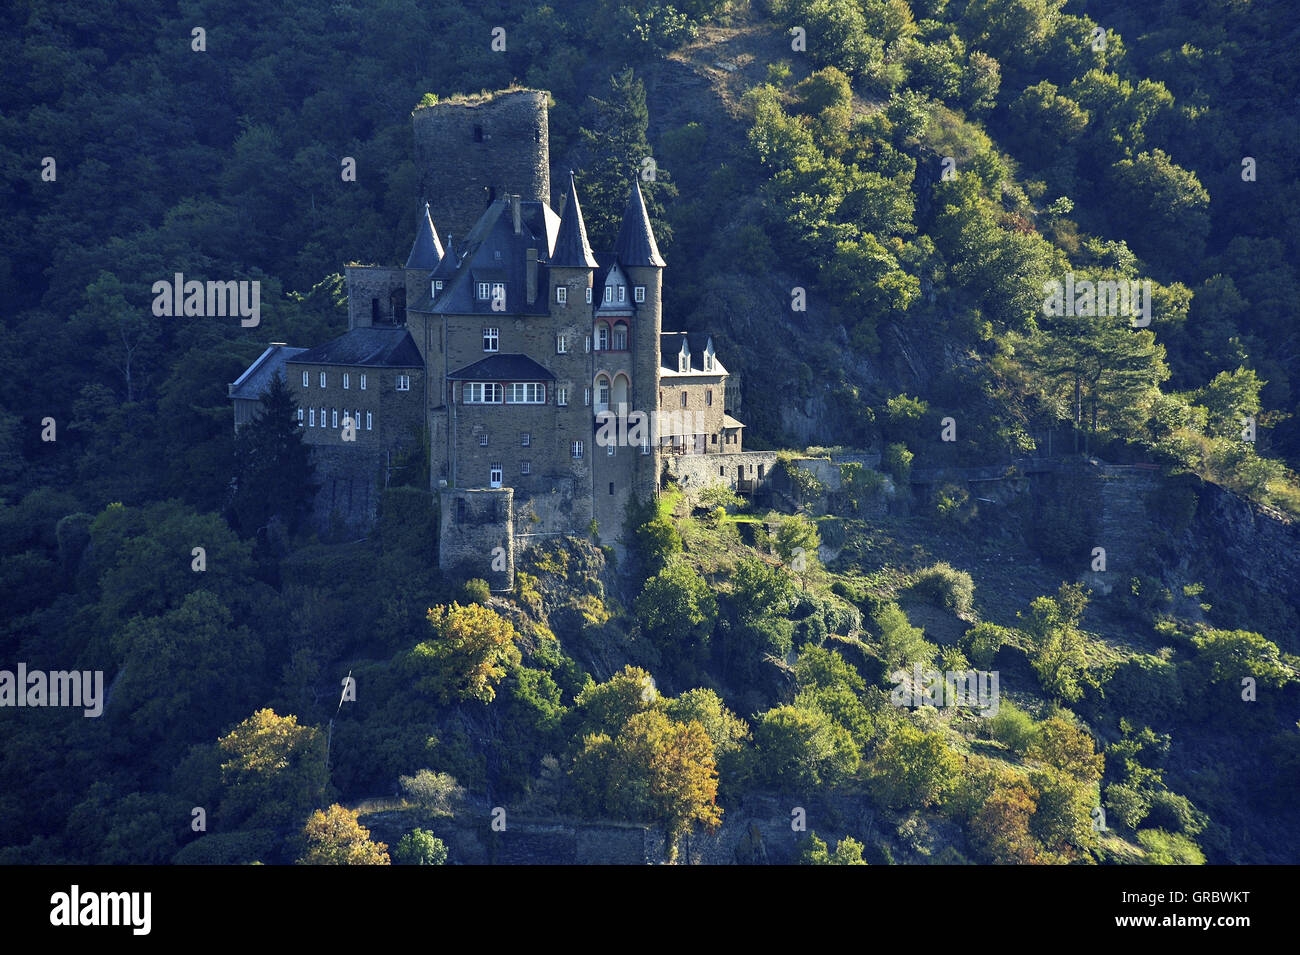 Castle Katz Touched By The First Morning Light, Upper Middle Rhine Valley, Germany - Stock Image